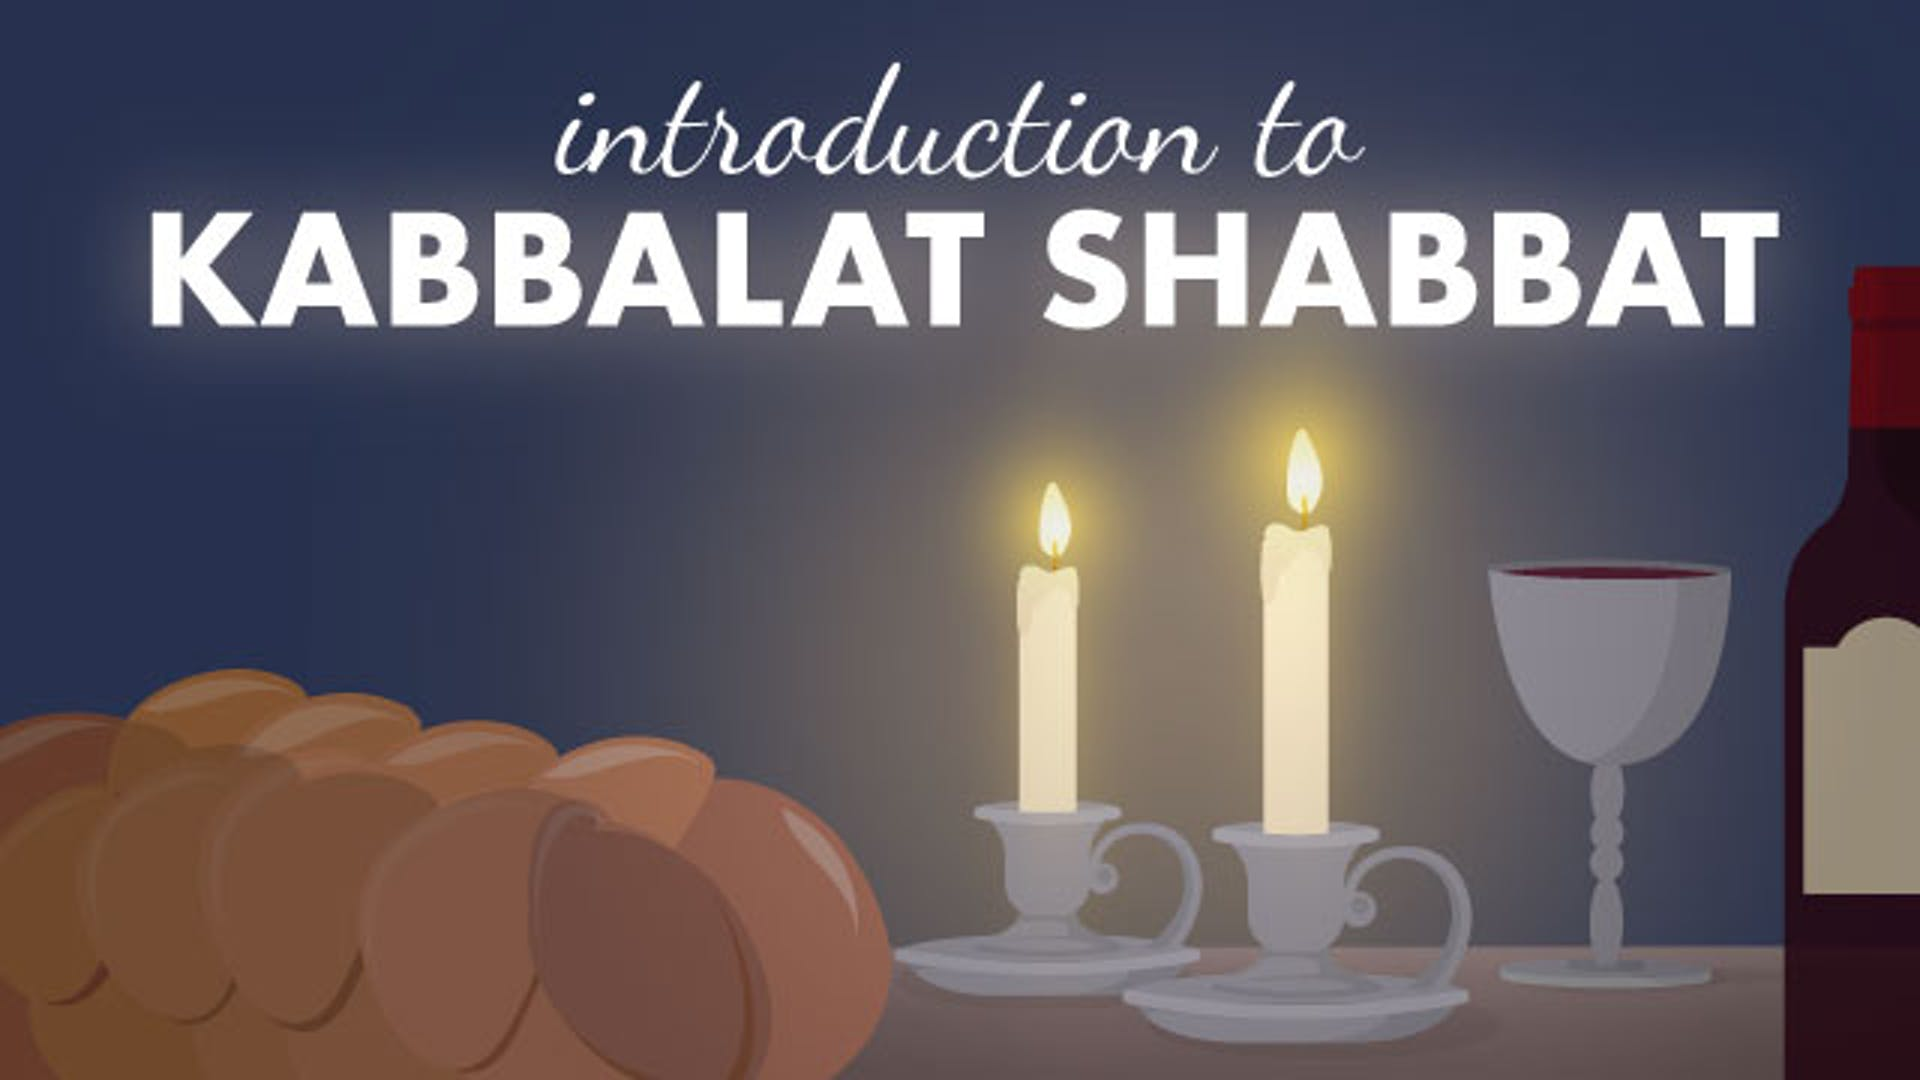 Introduction to Kabbalat Shabbat